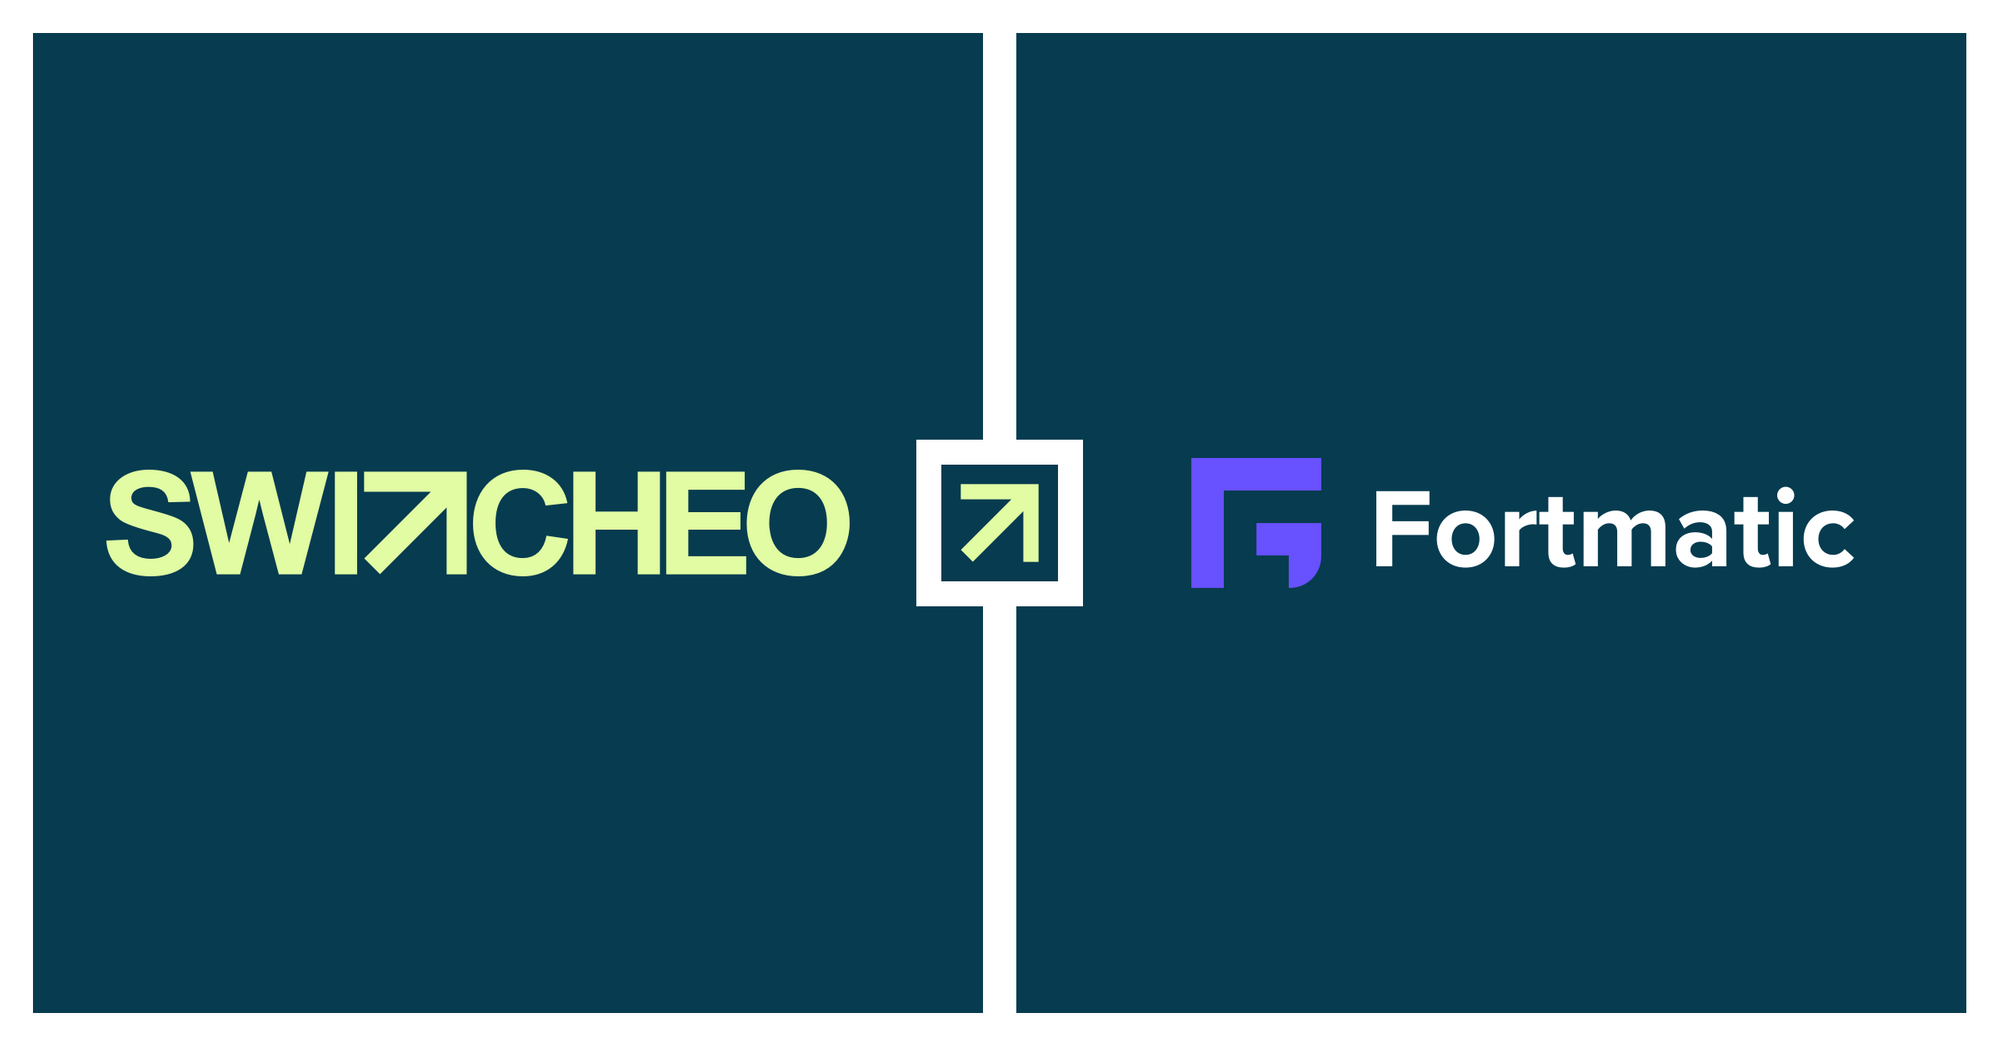 Switcheo Exchange Integrates a New Wallet, Fortmatic